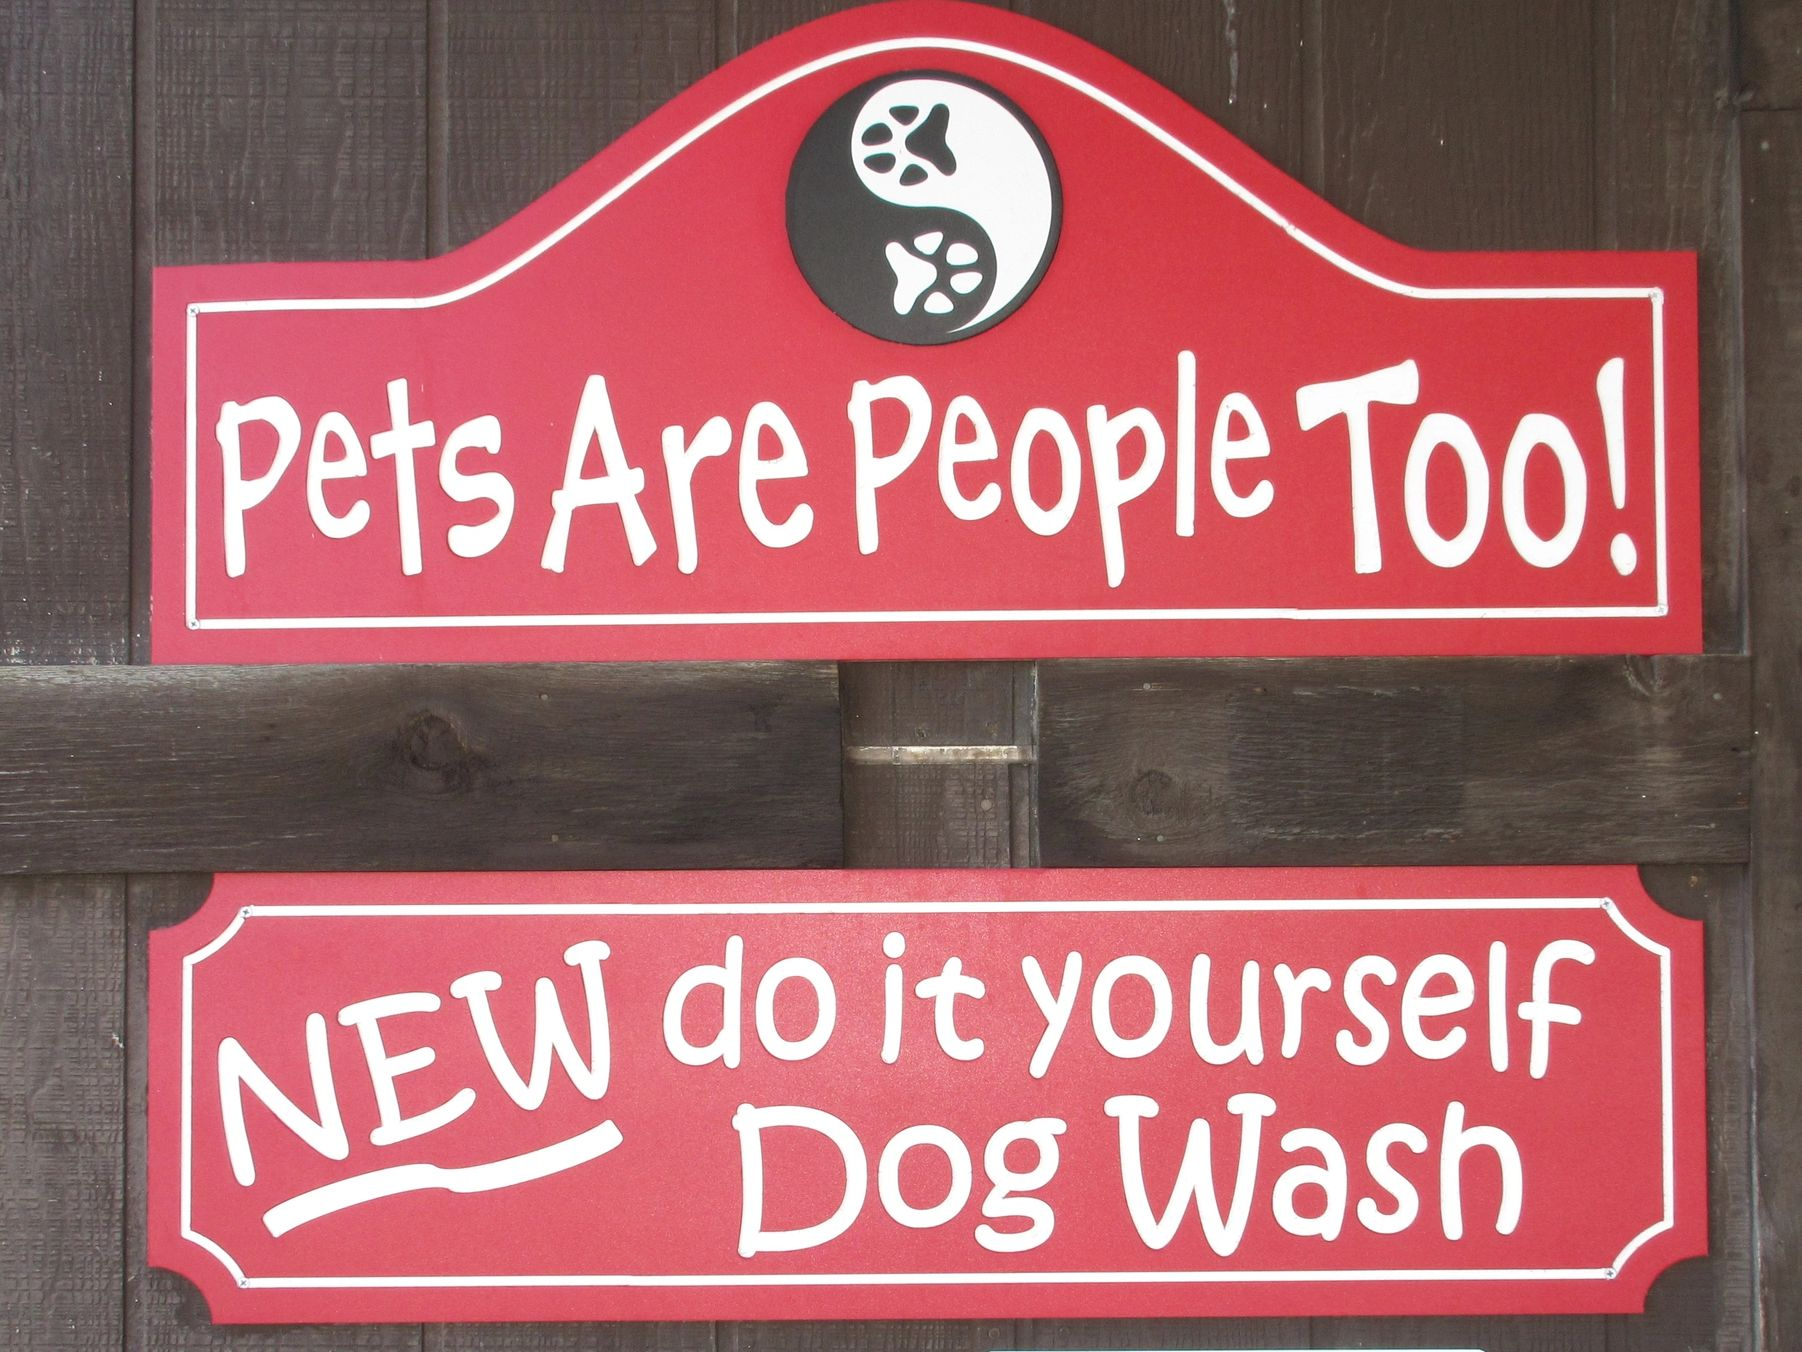 Pets Are People Too, DIY Dog Wash, Self-Serve Dog Wash, Bubbies Bath Haus, PAPTOO DIY DOG WASH